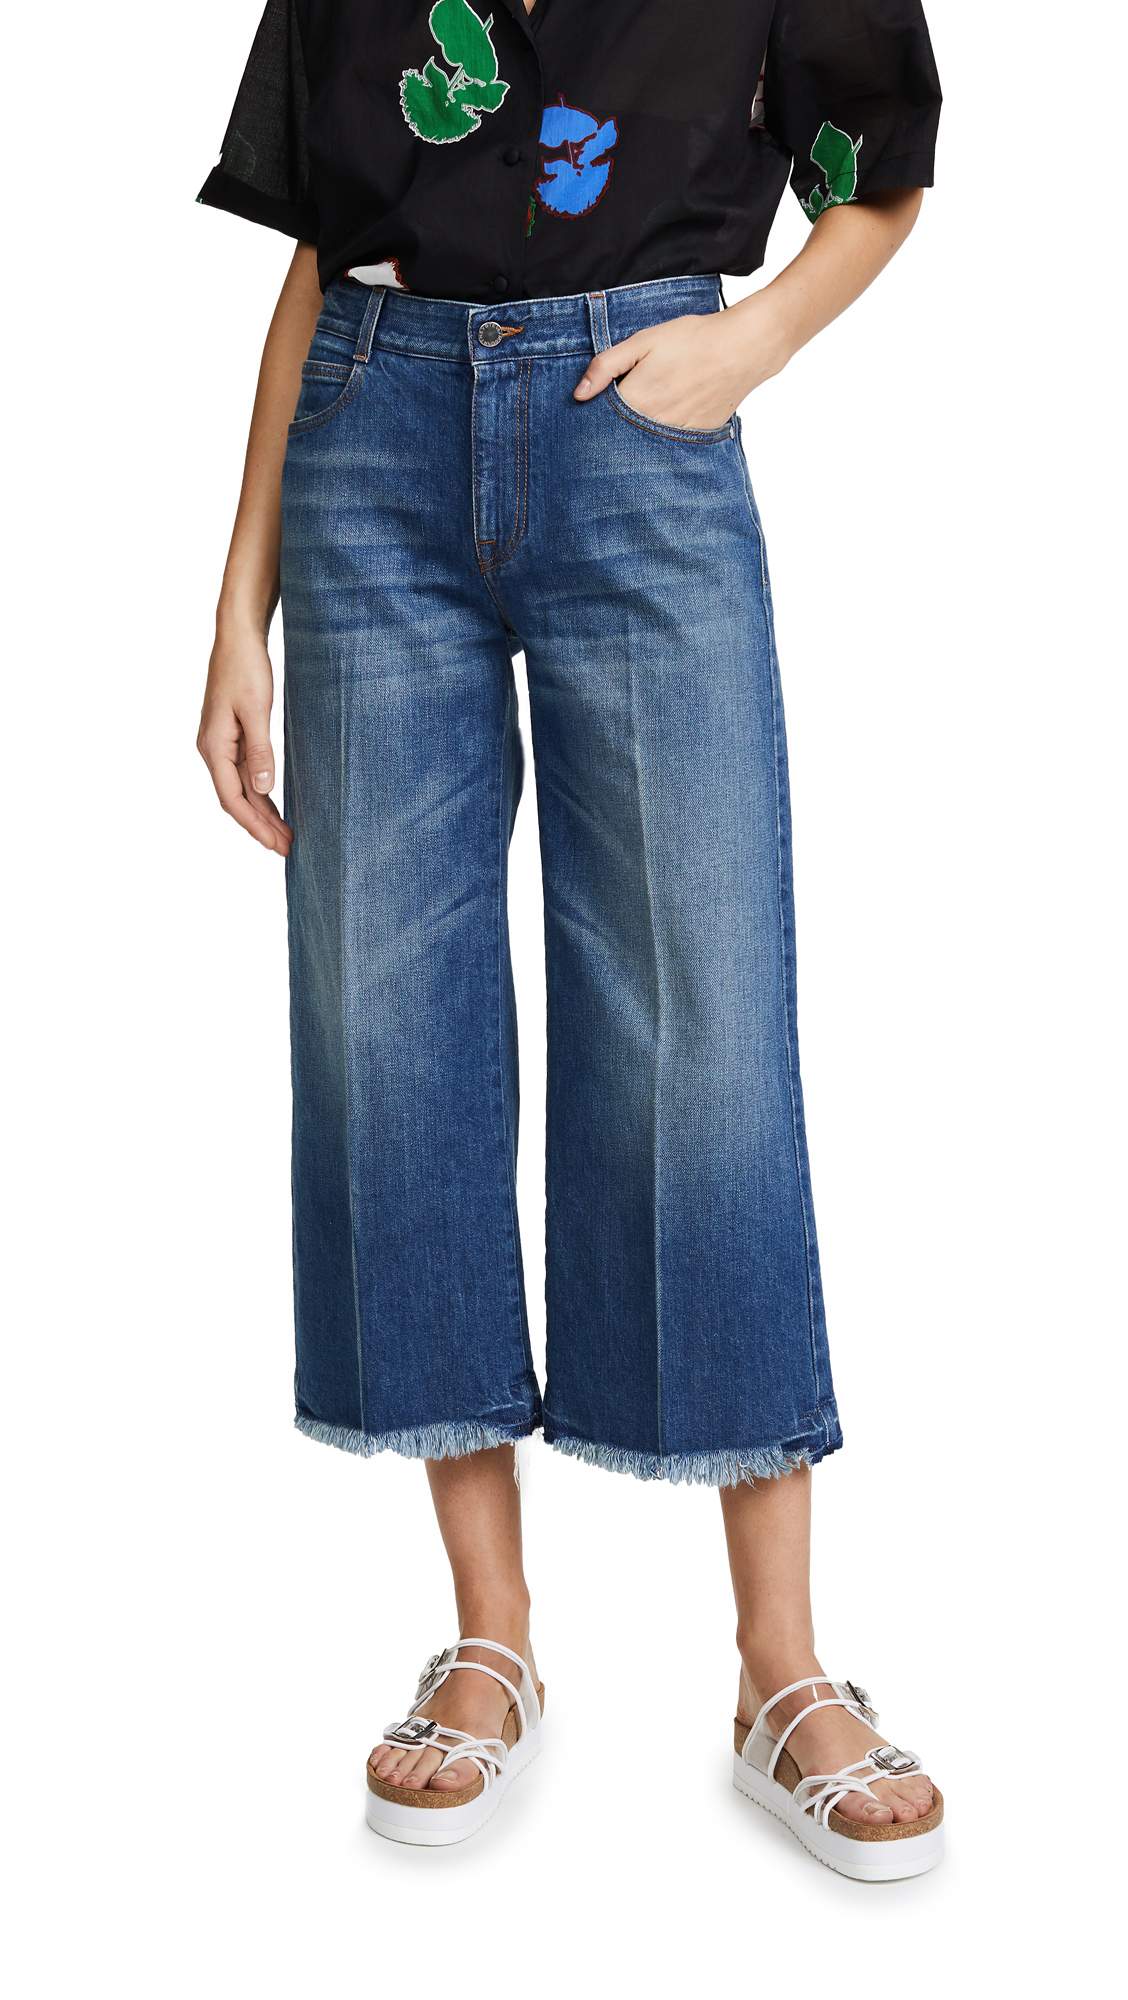 Stella McCartney Cropped Wide Leg Jeans - Classic Blue